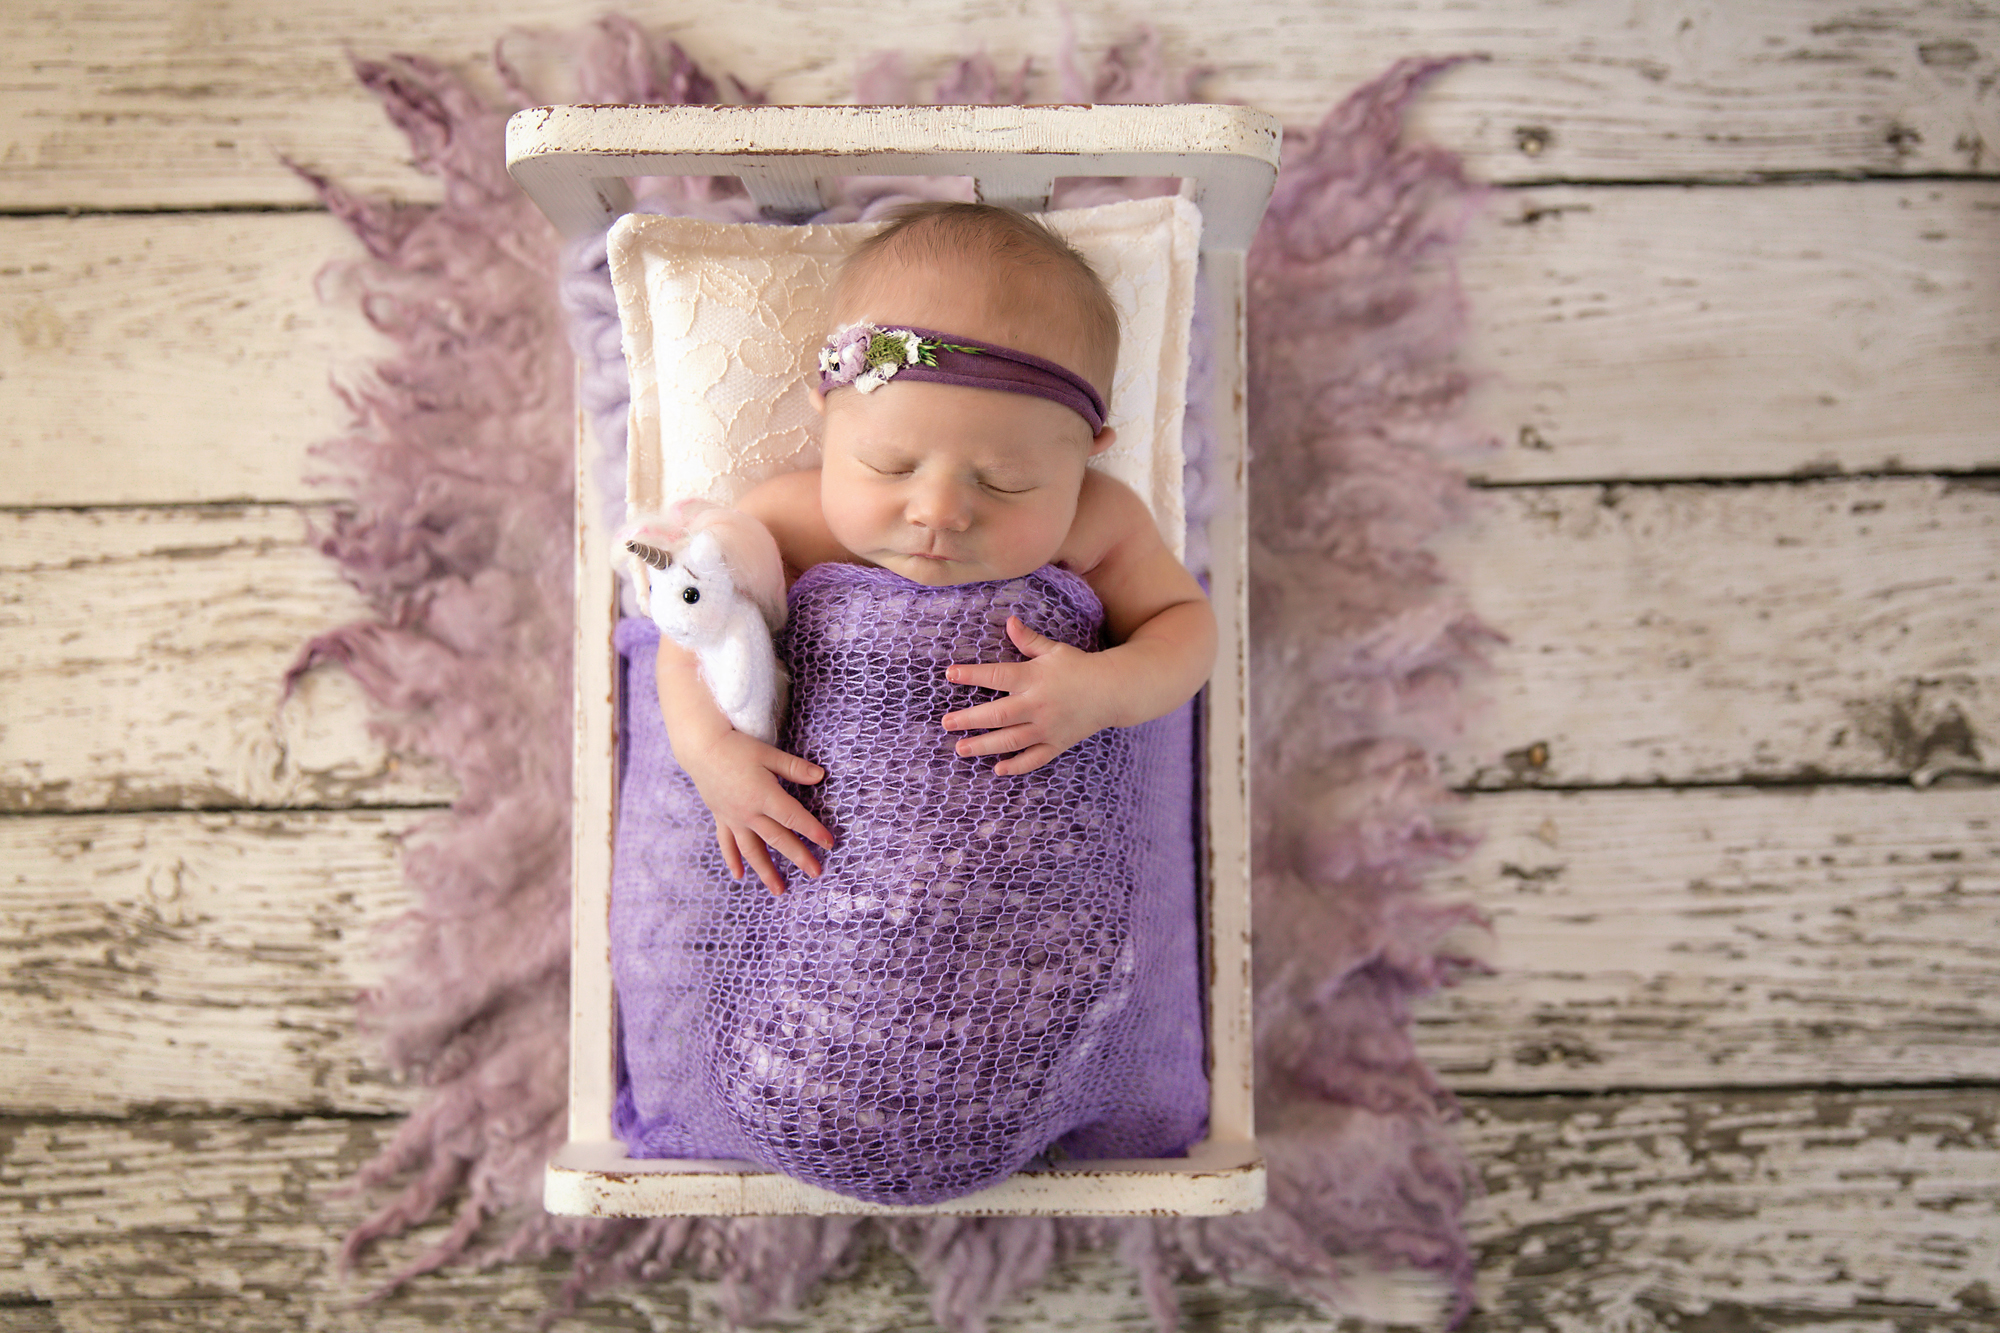 Newborn Photoshoot inspiration ideas. Calgary and Airdrie, Alberta Newborn and Baby photographer - Milashka Photography. Baby girl is wrapped in a lilac wrap and is posed on a little white wooden bed and is holding a unicorn.